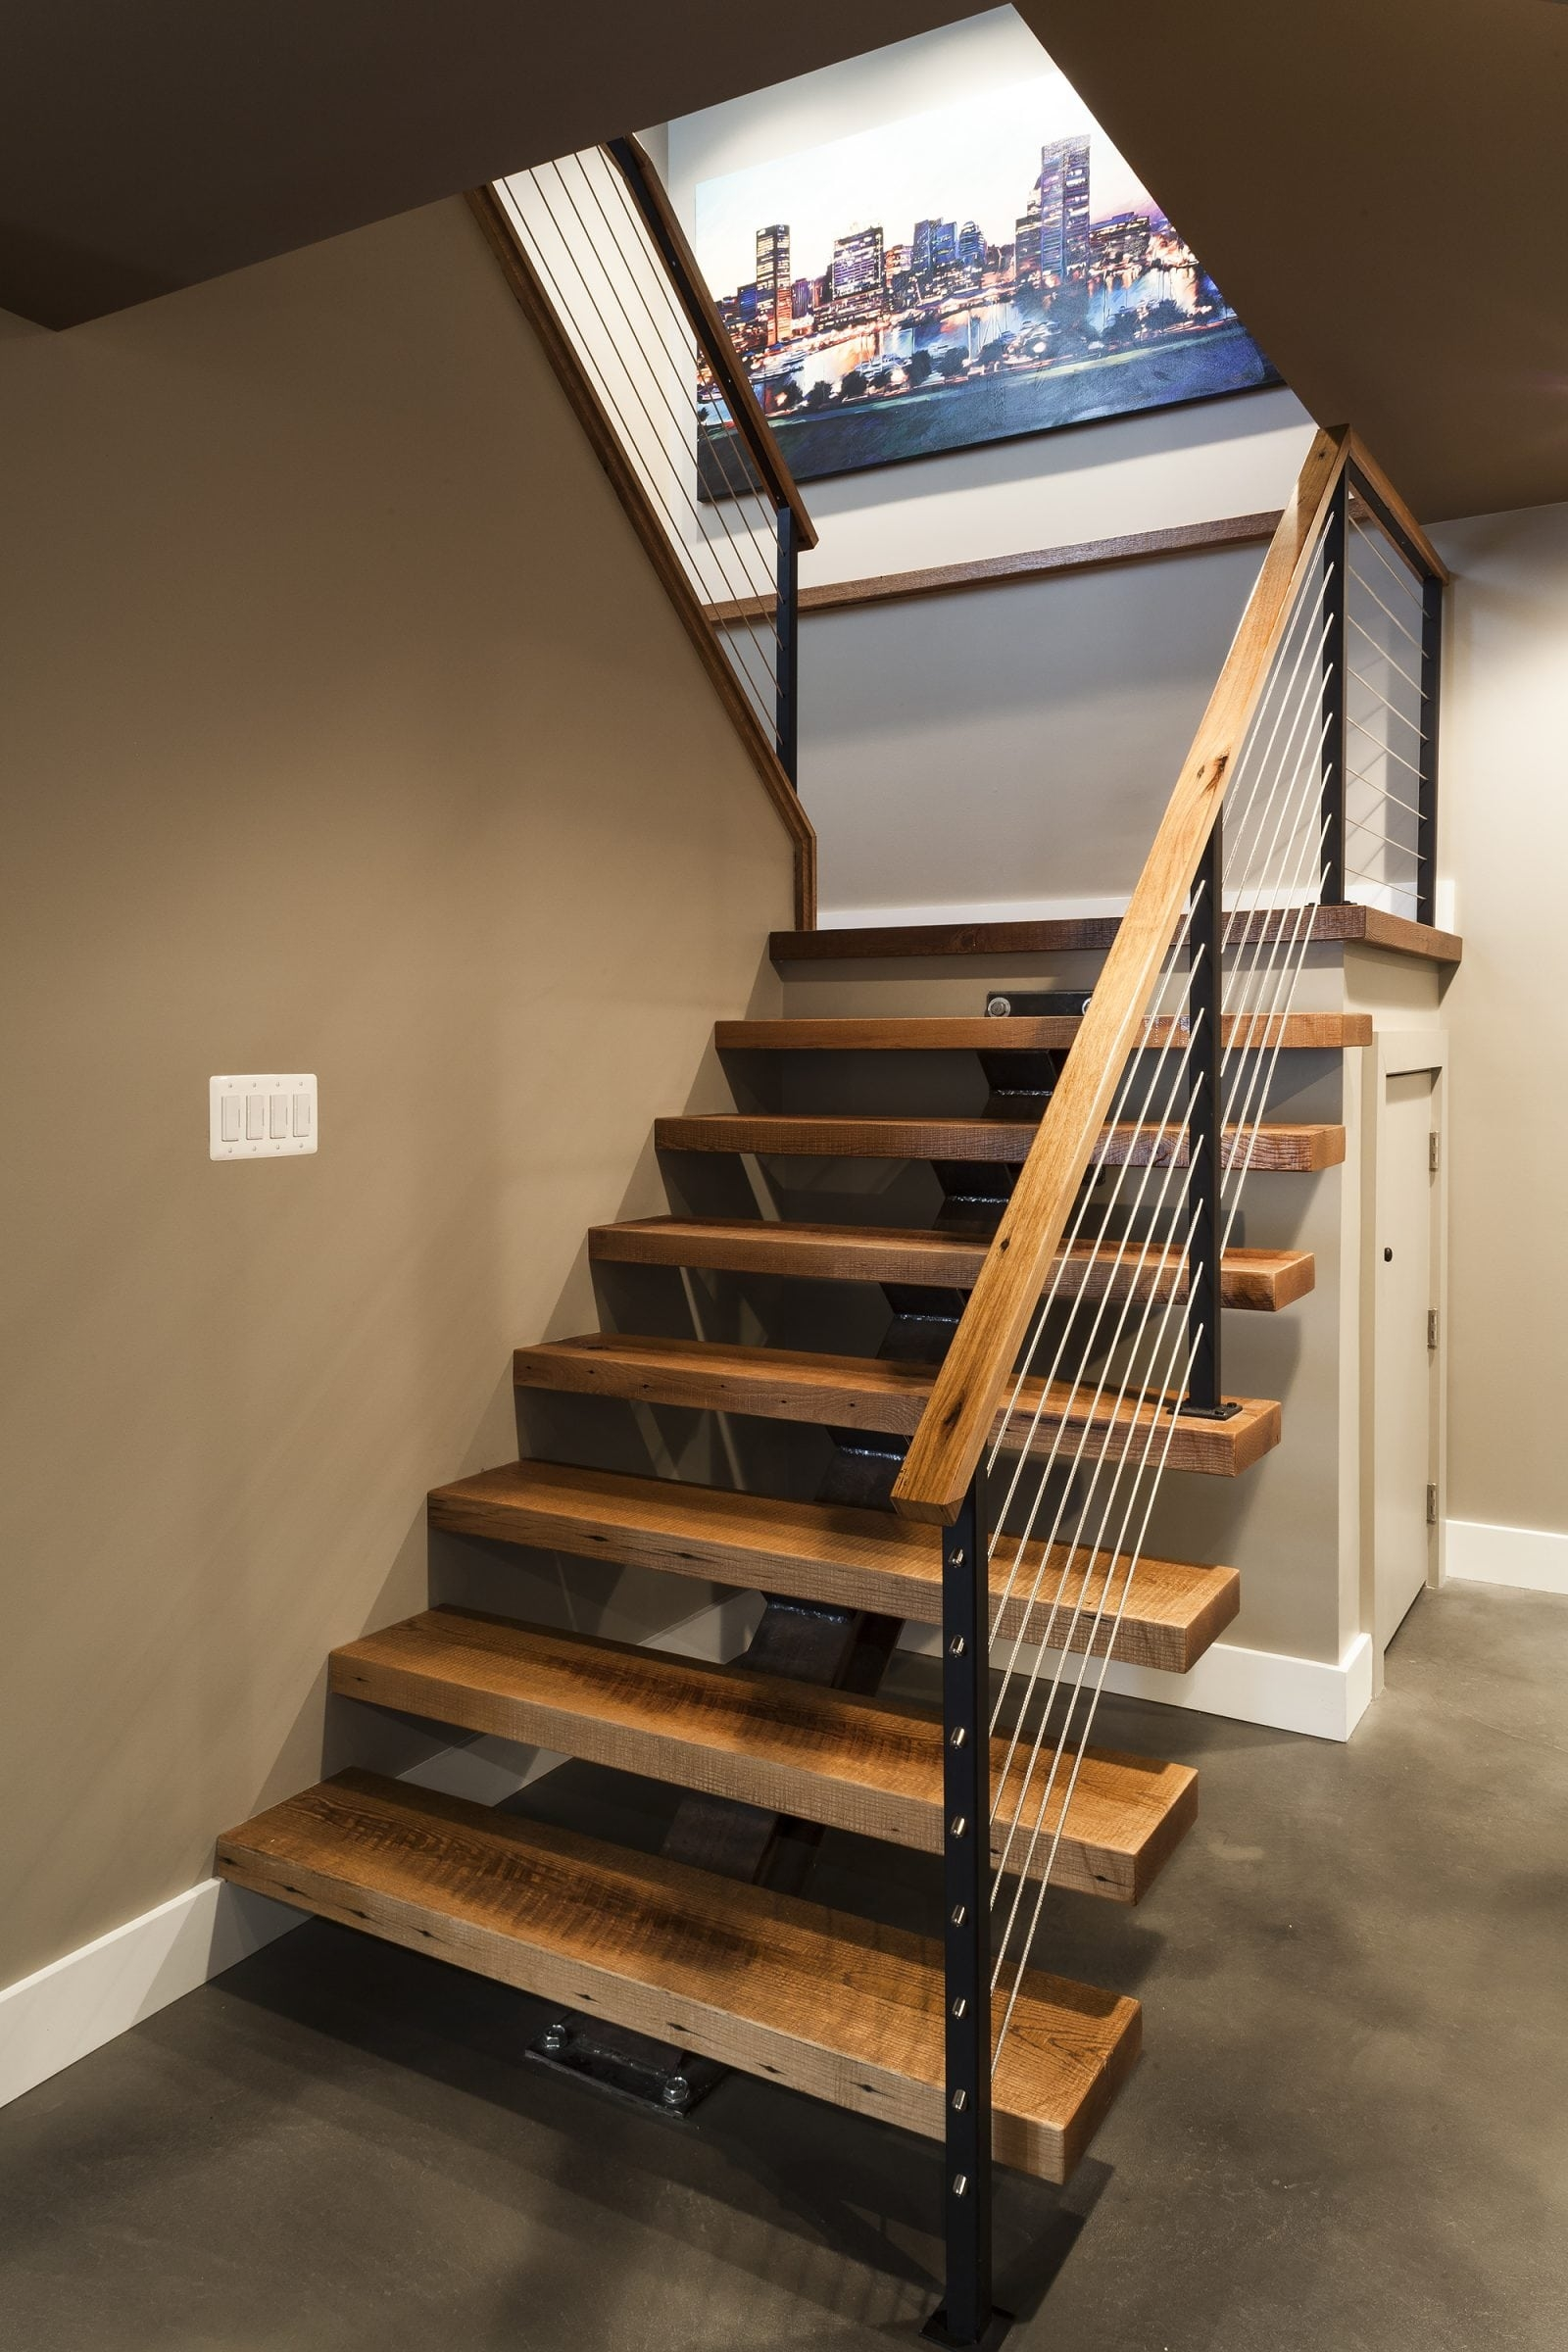 Cable Railing Vs Wood Railing Owings Brothers Contracting | New Stair Railing Cost | Staircase Ideas | Glass Railing | Staircase Design | Stair Parts | Wooden Stairs